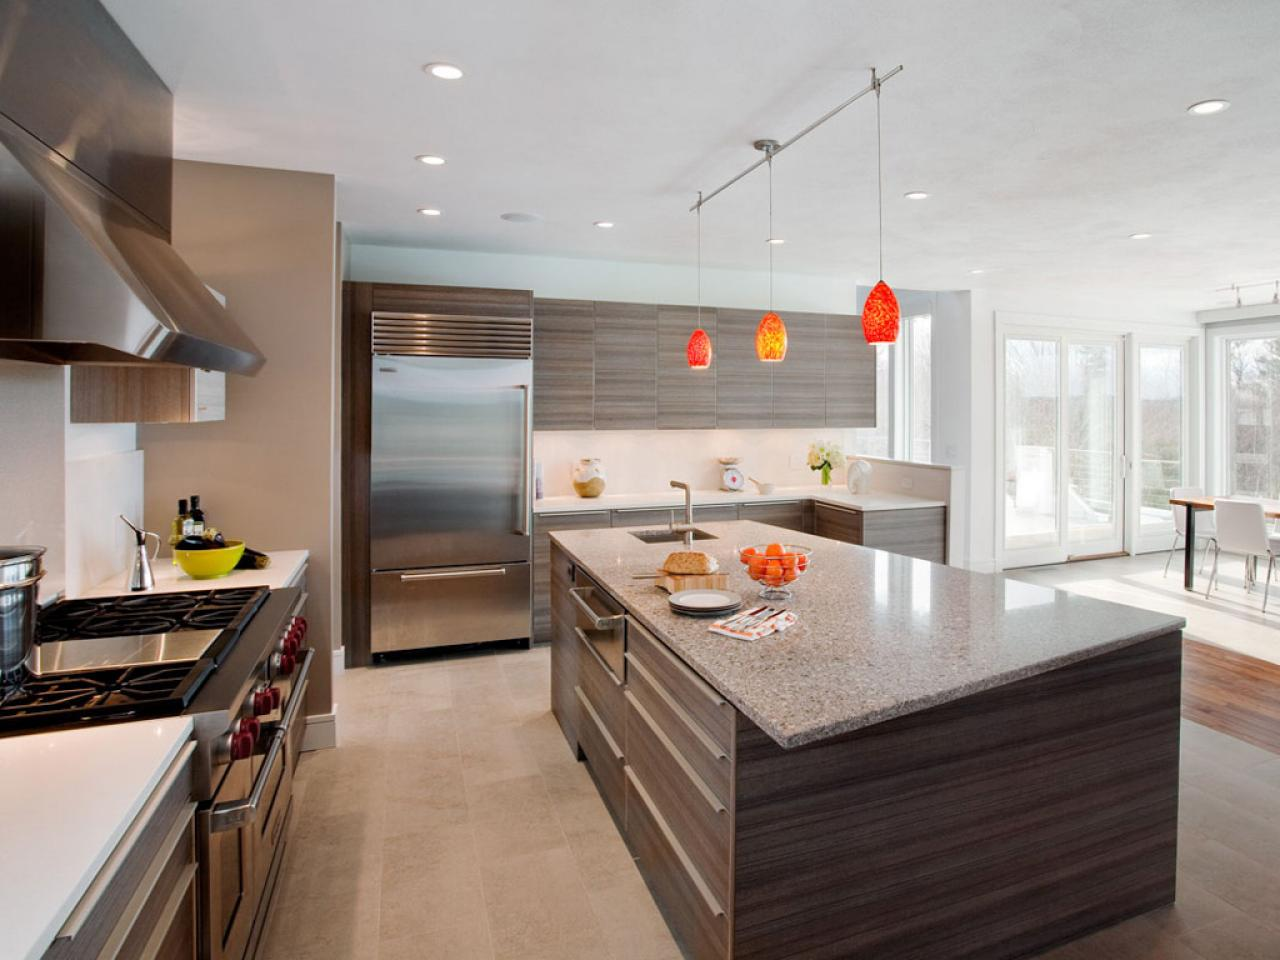 Luxurious touch applying a modern kitchen cabinets for Modern kitchen designs with island